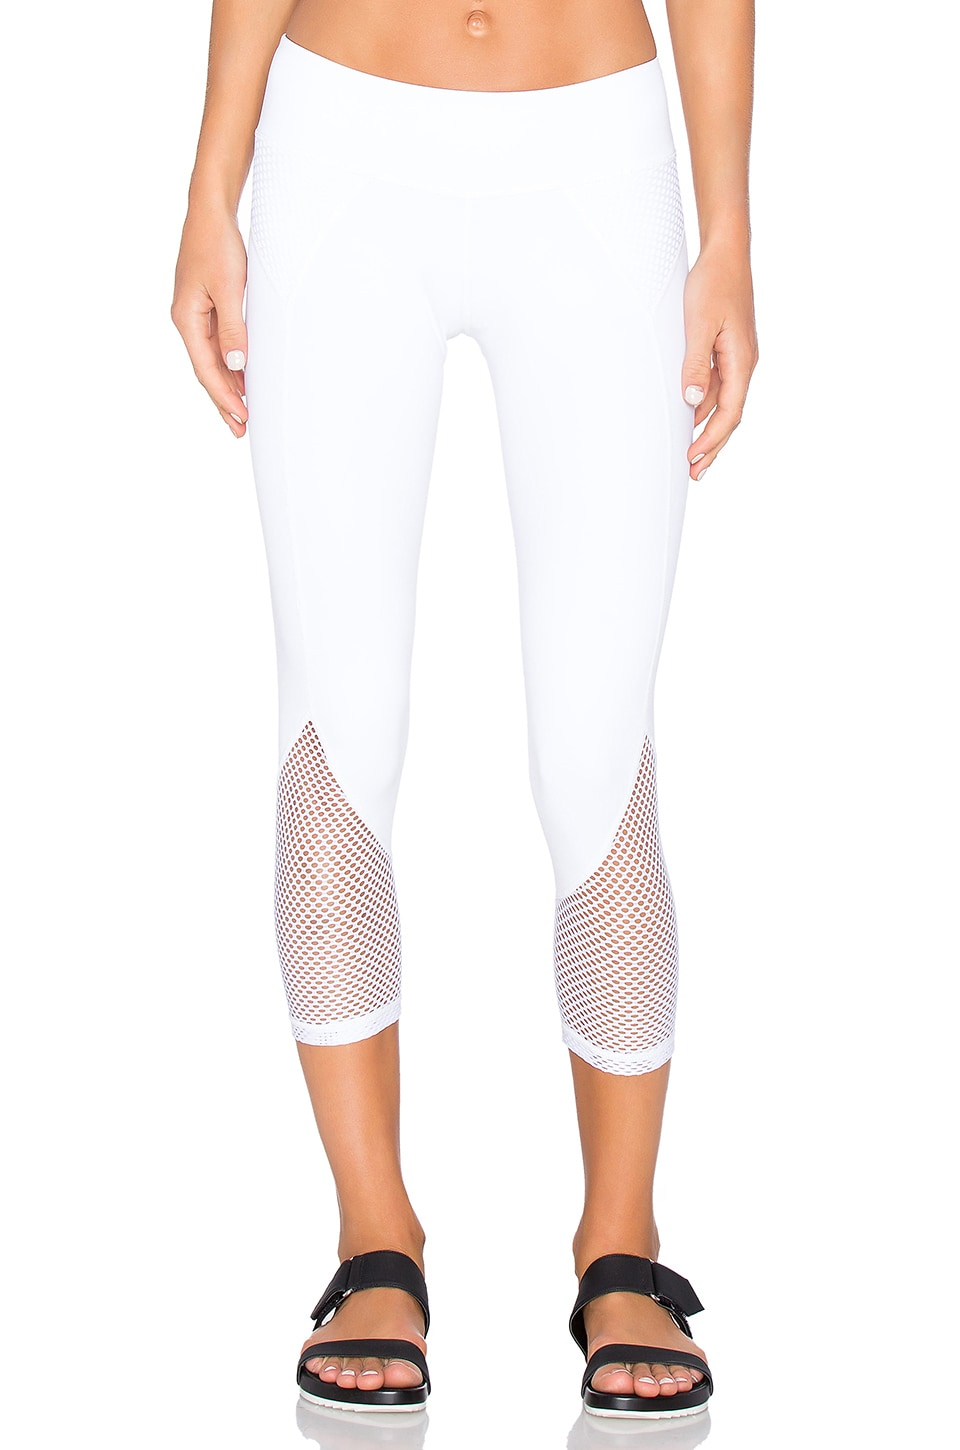 Demi Mesh Panel Capri by CHICHI